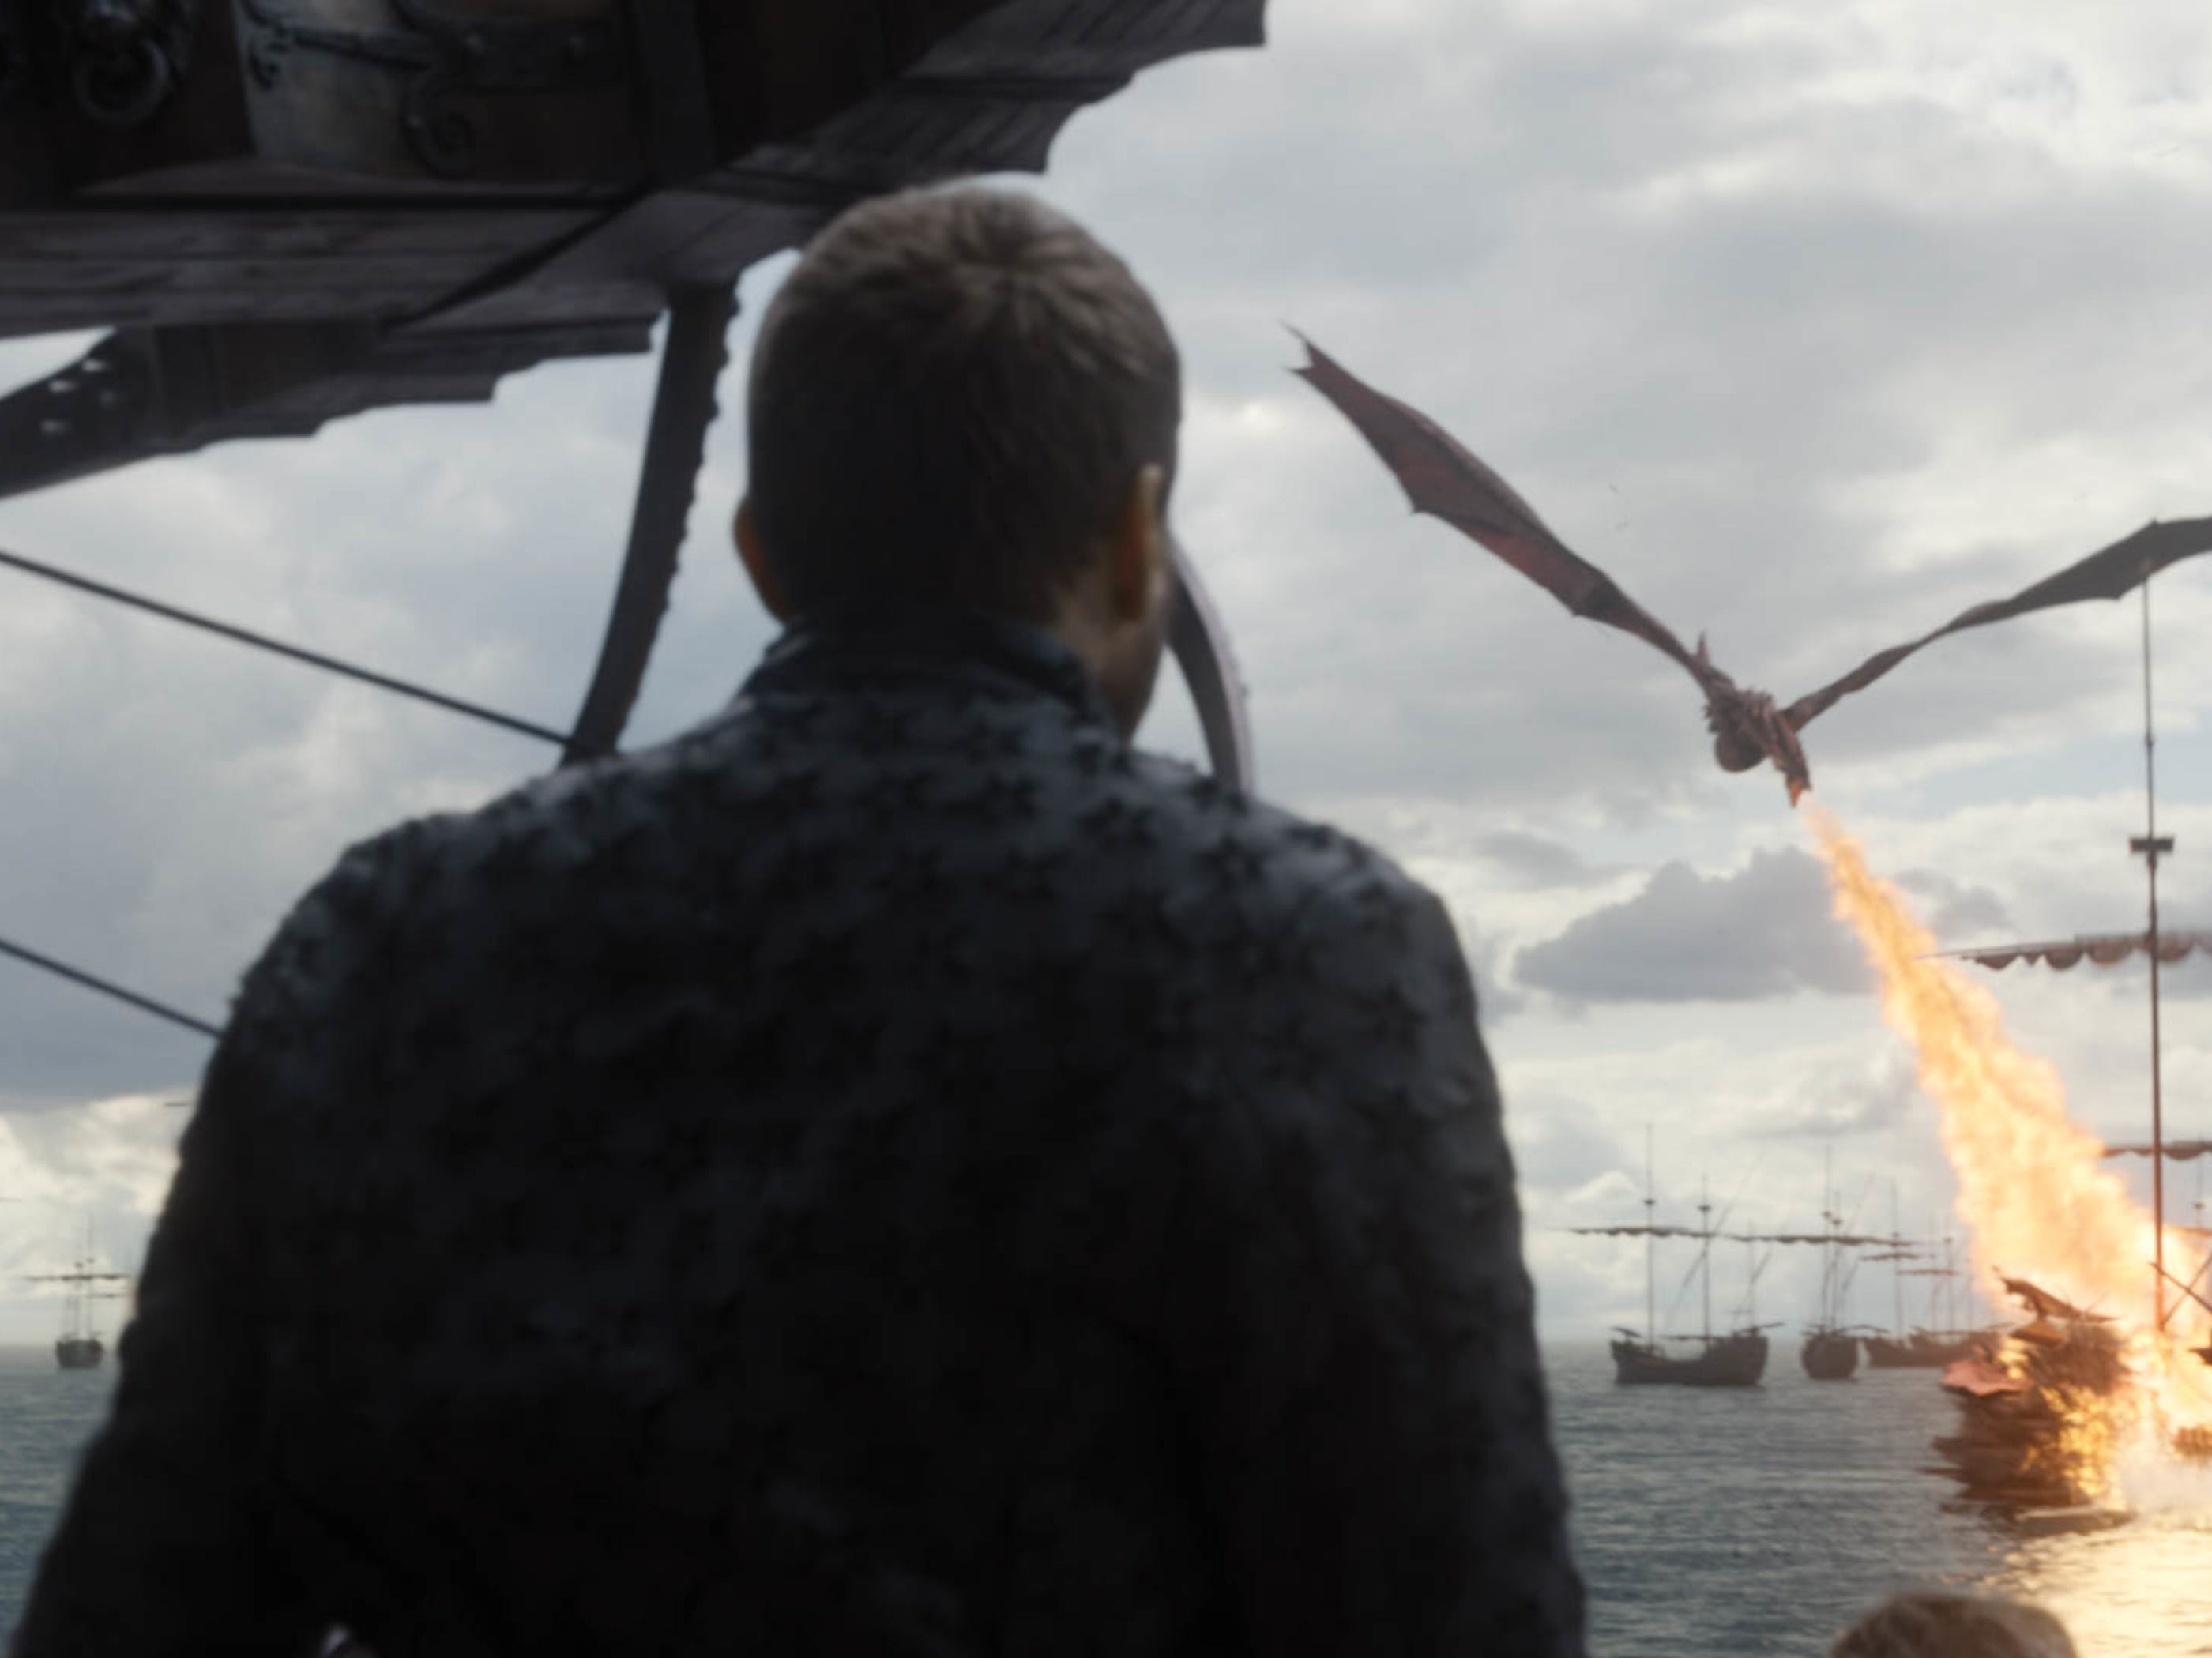 Euron Greyjoy (Pilou Asbaek) watches as Daenerys's dragon, Drogon, destroys his fleet in the penultimate episode of 'Game of Thrones.'